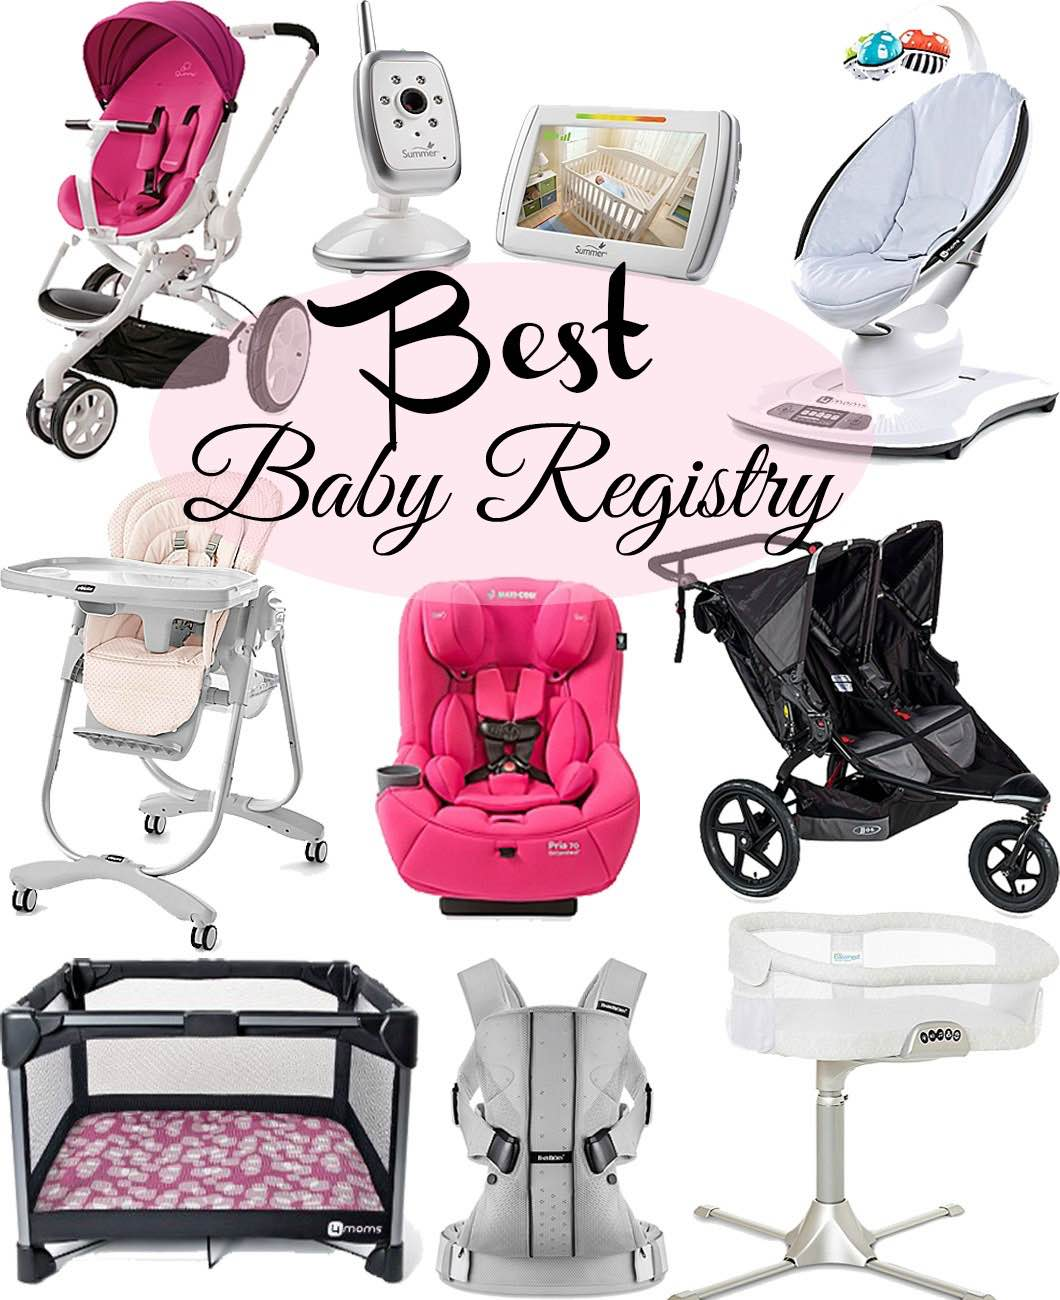 Fullsize Of Buy Buy Baby Registry